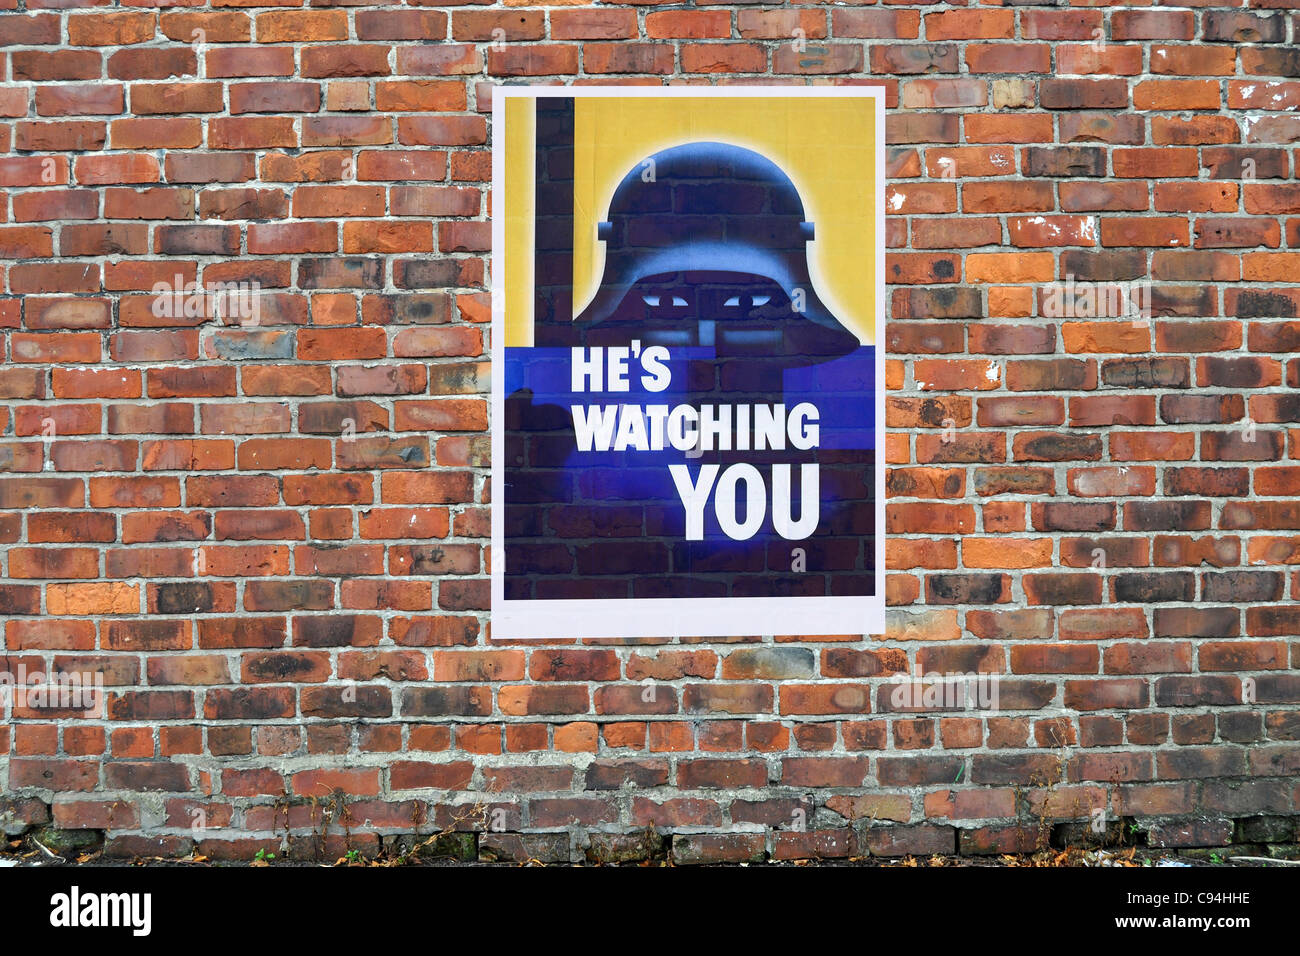 American WW2 Propaganda Poster on a brick wall - Stock Image